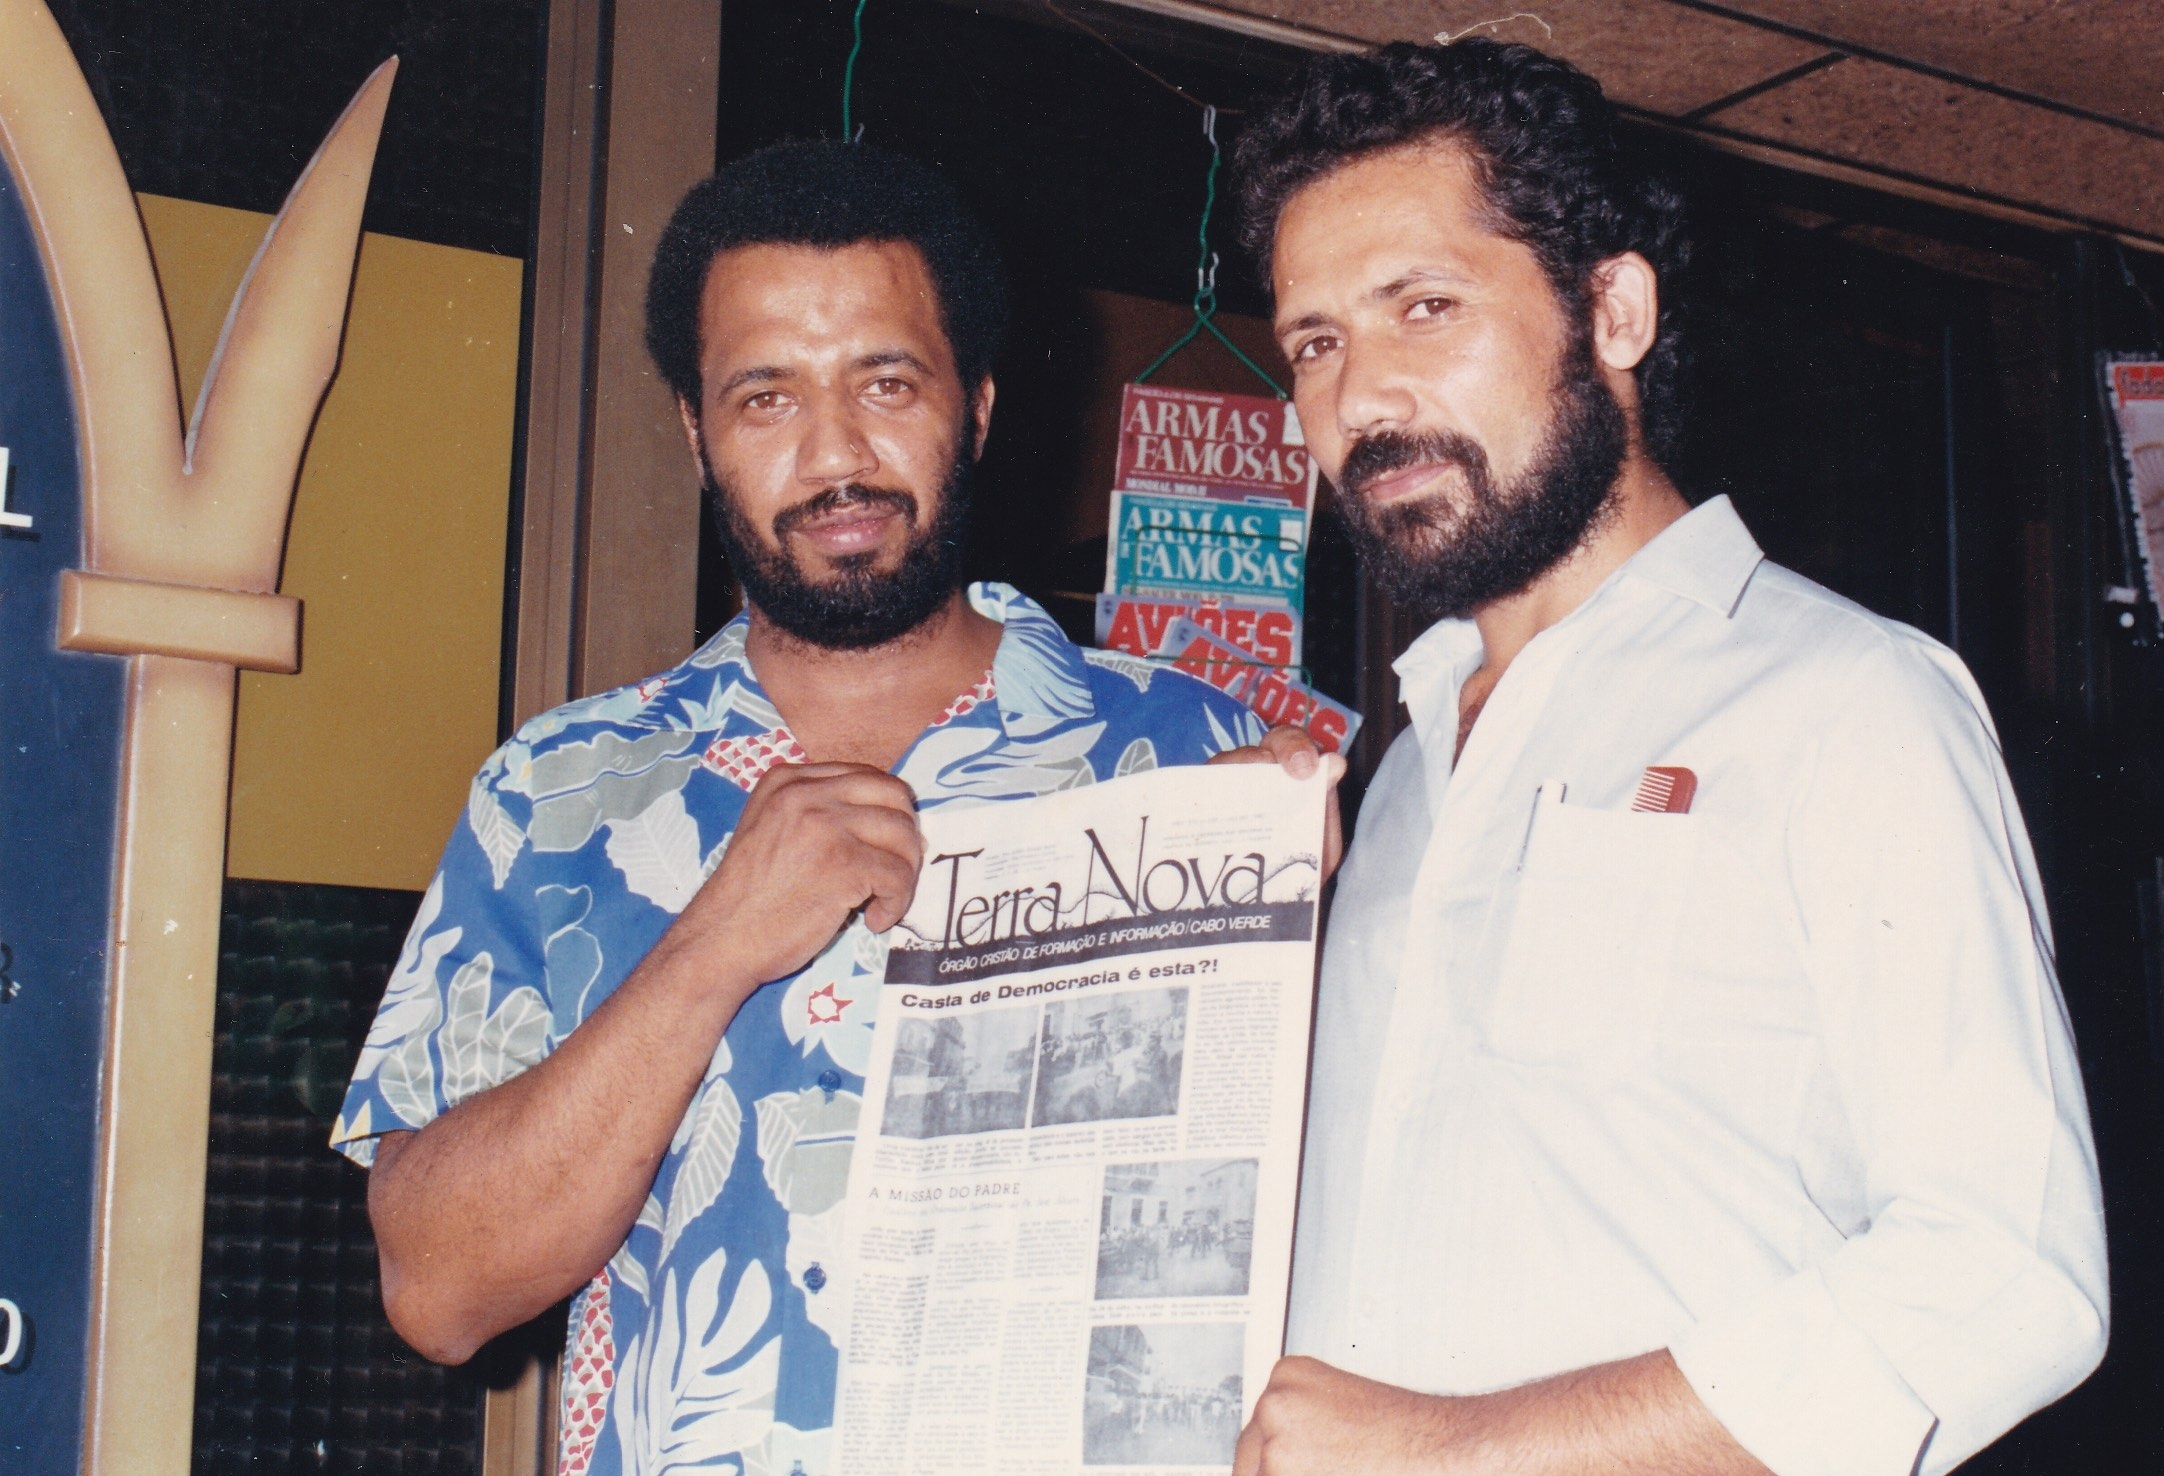 (L) An image from a rally for the independence in São Vicente, Cape Verde 1974 (R). In 1989 Diniz and his friend Antonio Almeida pose for a picture while holding Terra Nova, a pro-independence publication.